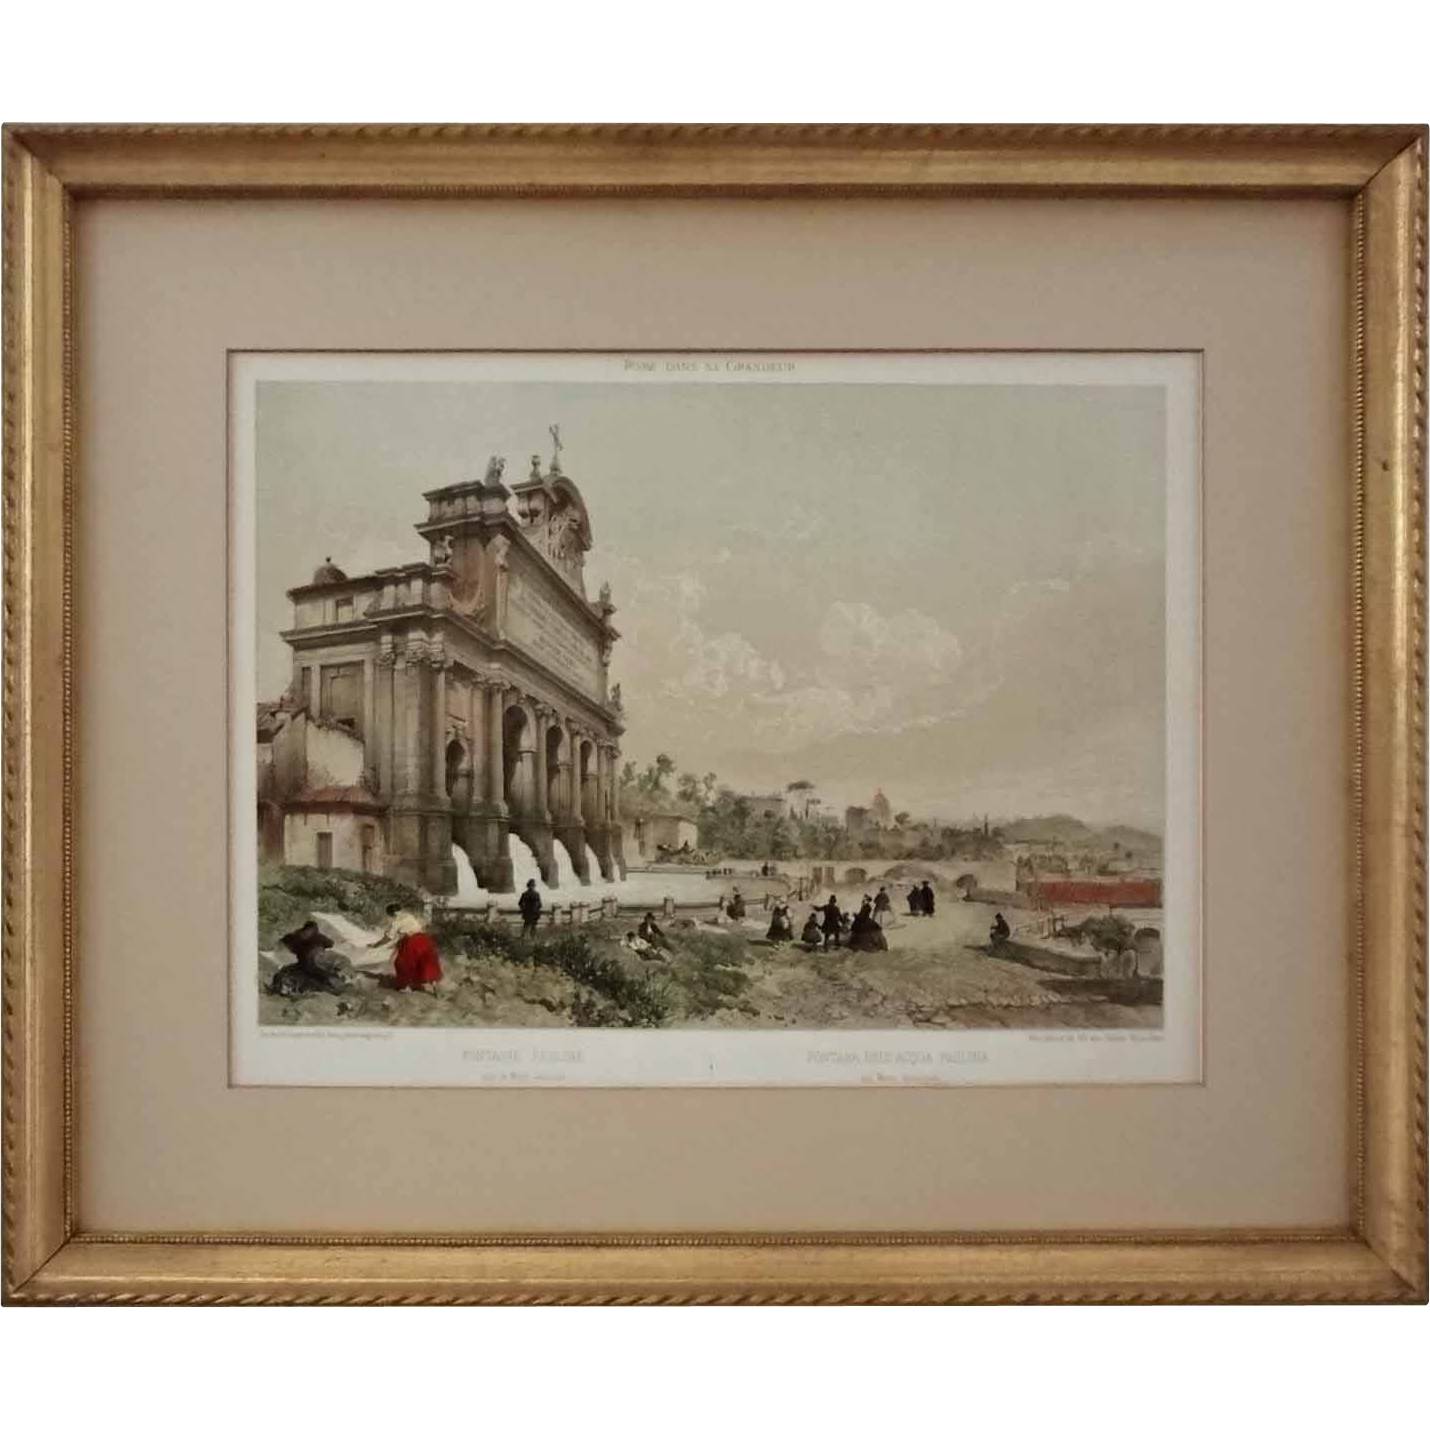 Antique Color Lithograph Rome Fontana dell' Aqua Paolina sul Monte Gianicolo, Felix Benoist Gilt Frame - 19th Century, France